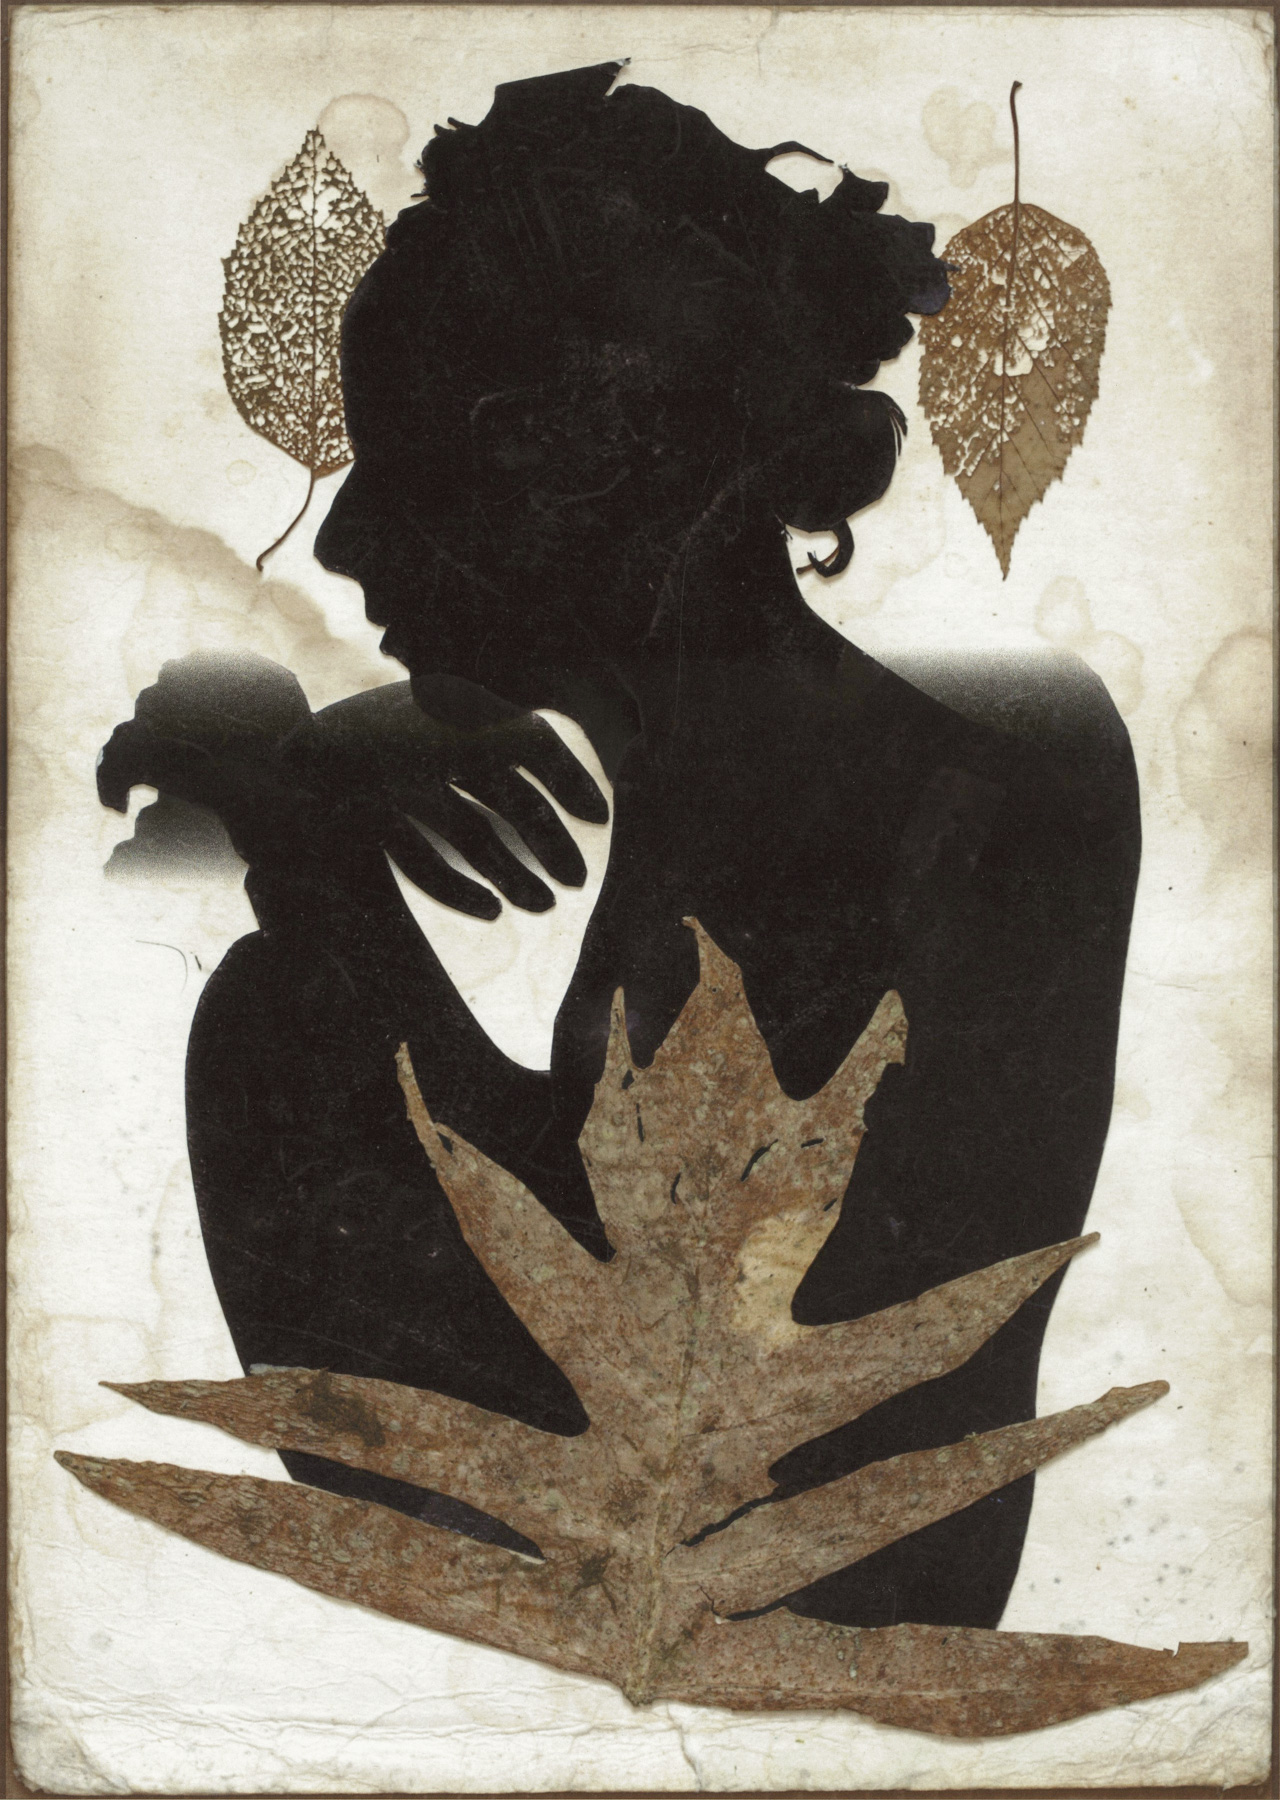 Edith in Panama with Three Leaves , 2015, digital inkjet print. © Emmet and Edith Gowin; courtesy Pace/MacGill Gallery, New York